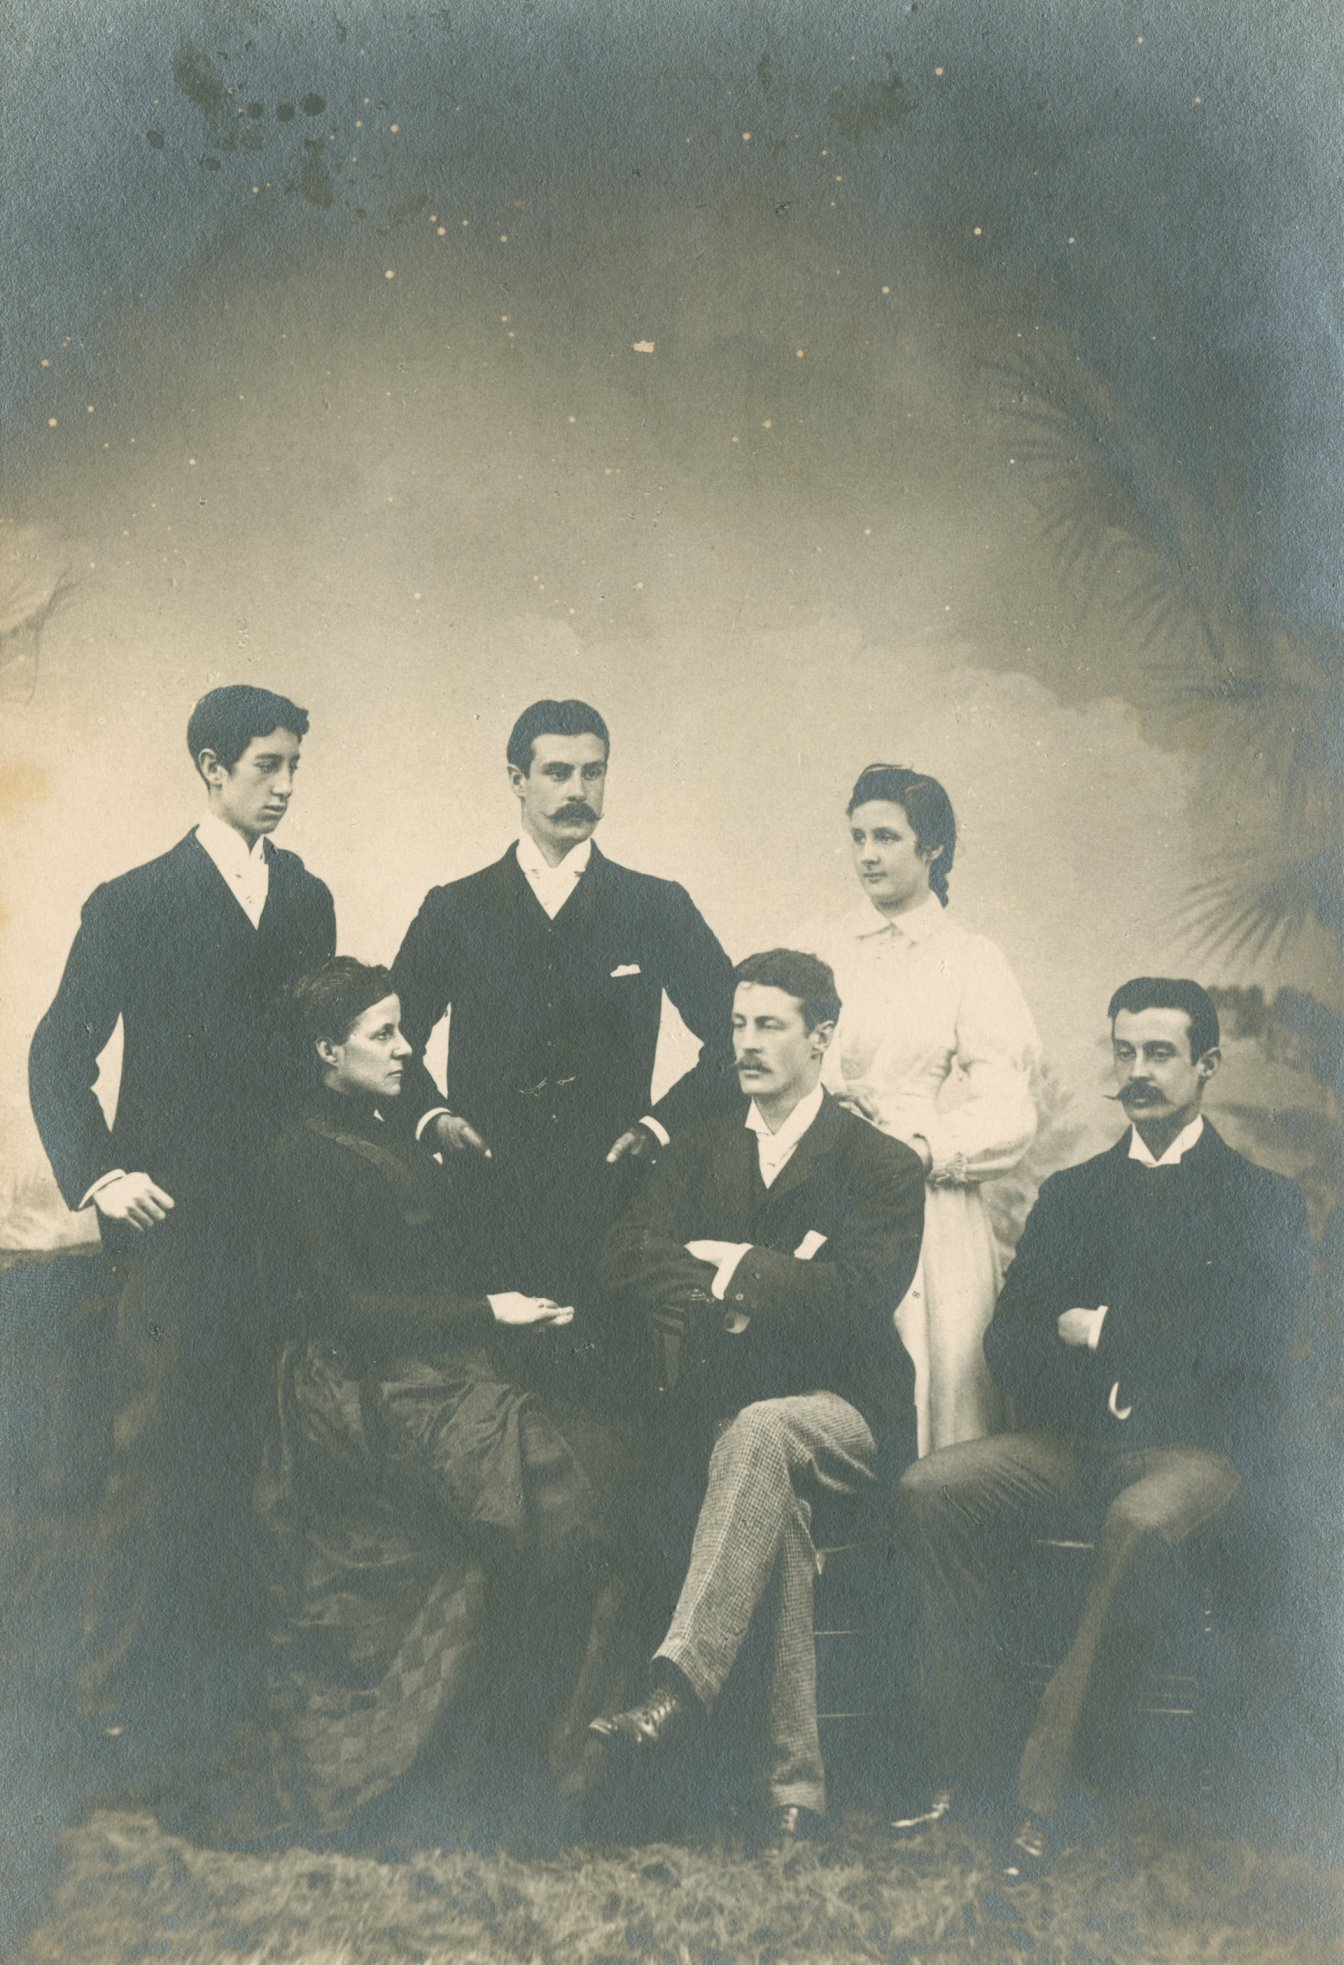 Black and white family photograph of four men and two women in period dress